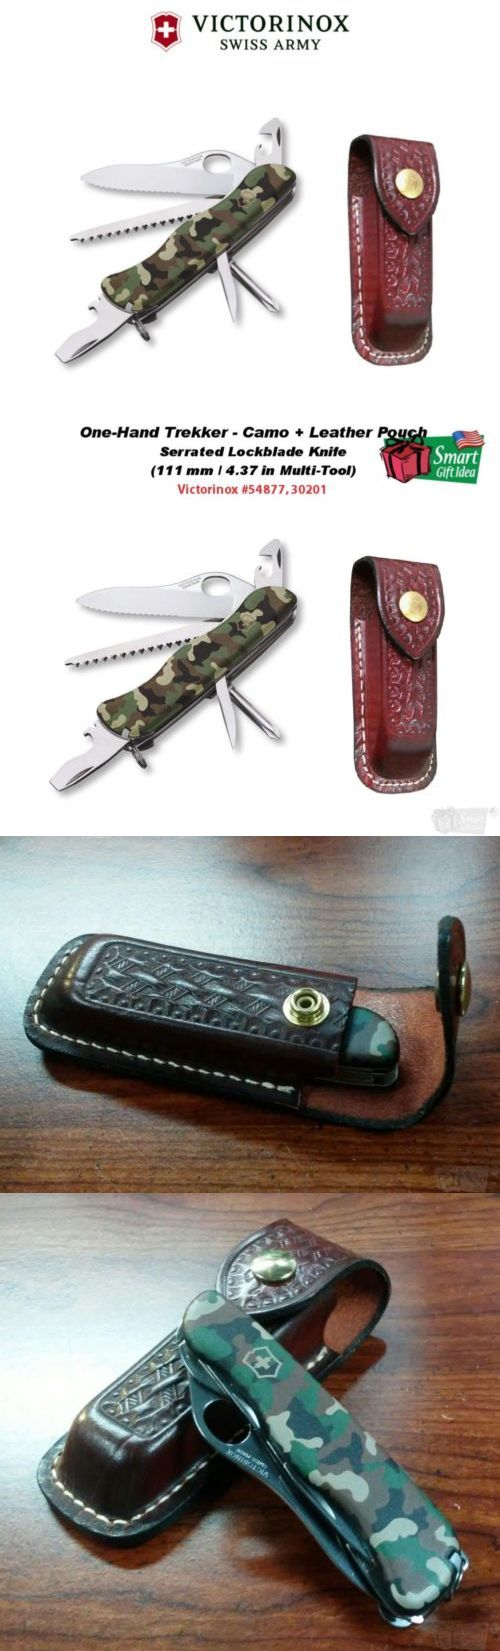 Other Camping Knives and Tools 100237: Victorinox One-Hand Trekker, Camo, 111Mm Tool + Leather Pouch #54877_30201 -> BUY IT NOW ONLY: $54.27 on eBay!